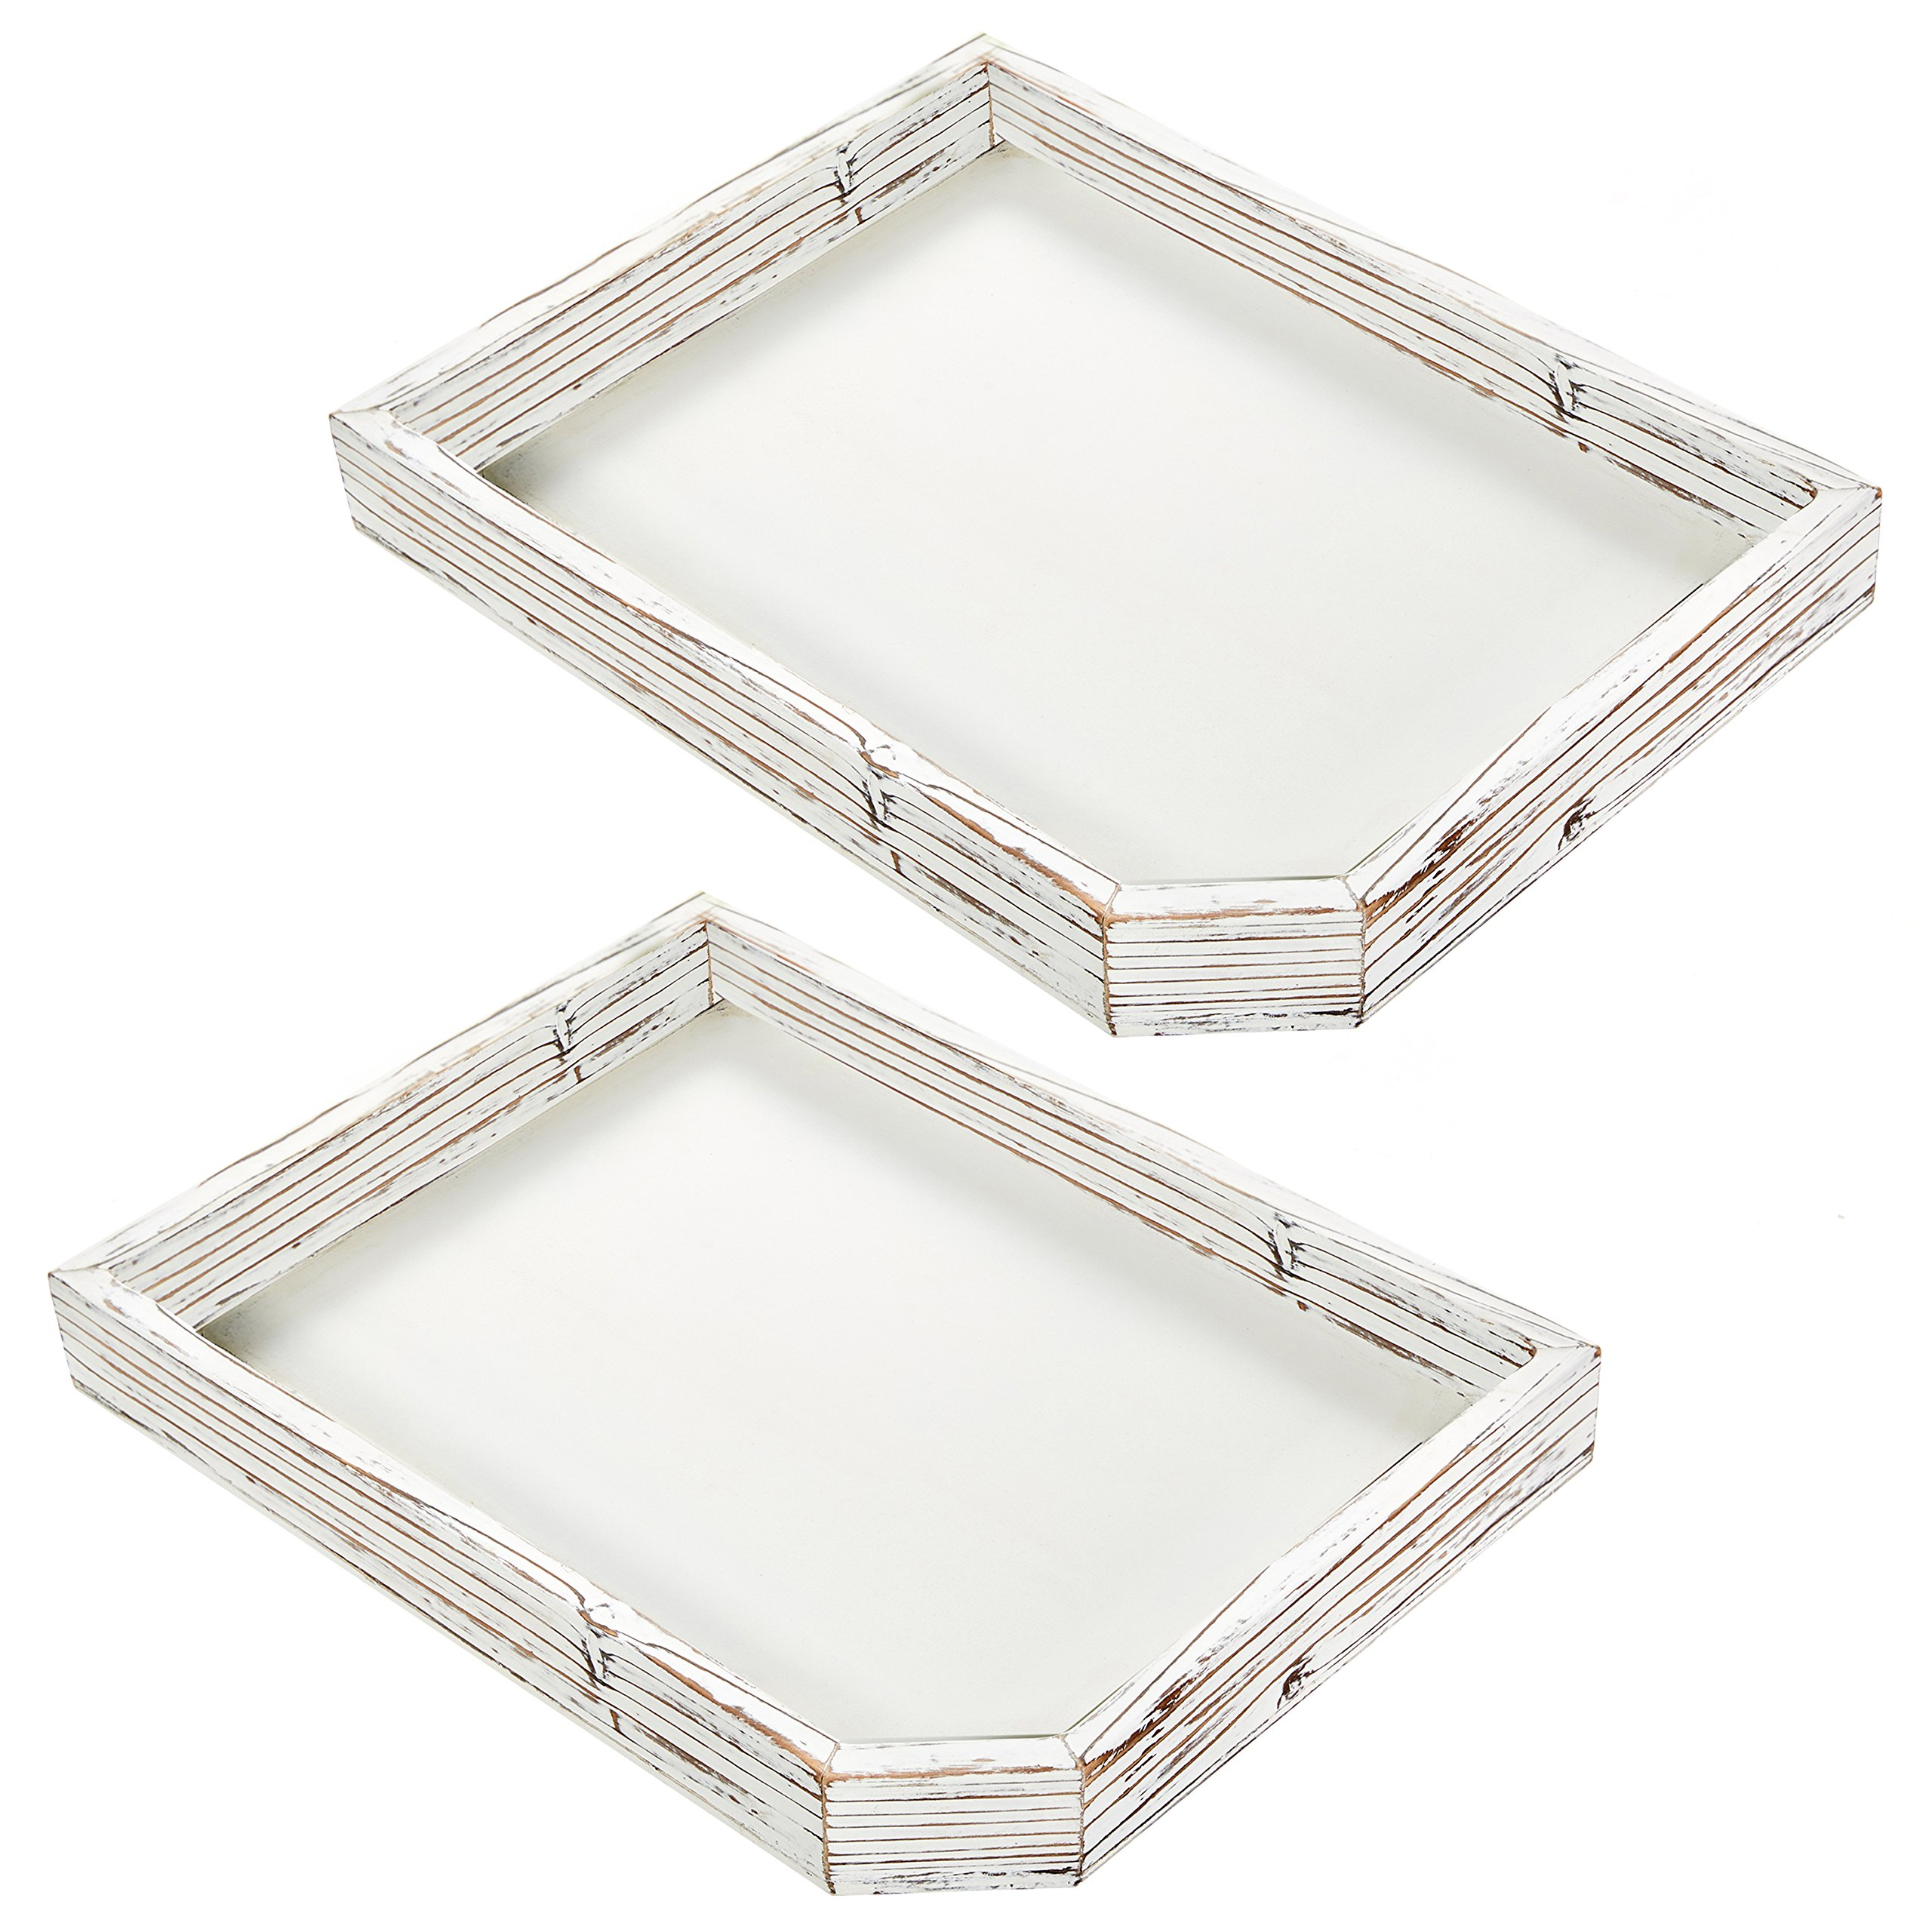 Set of 2 Distressed Whitewashed Wood Serving Trays, Farmhouse Style Coffee Table Display Tray